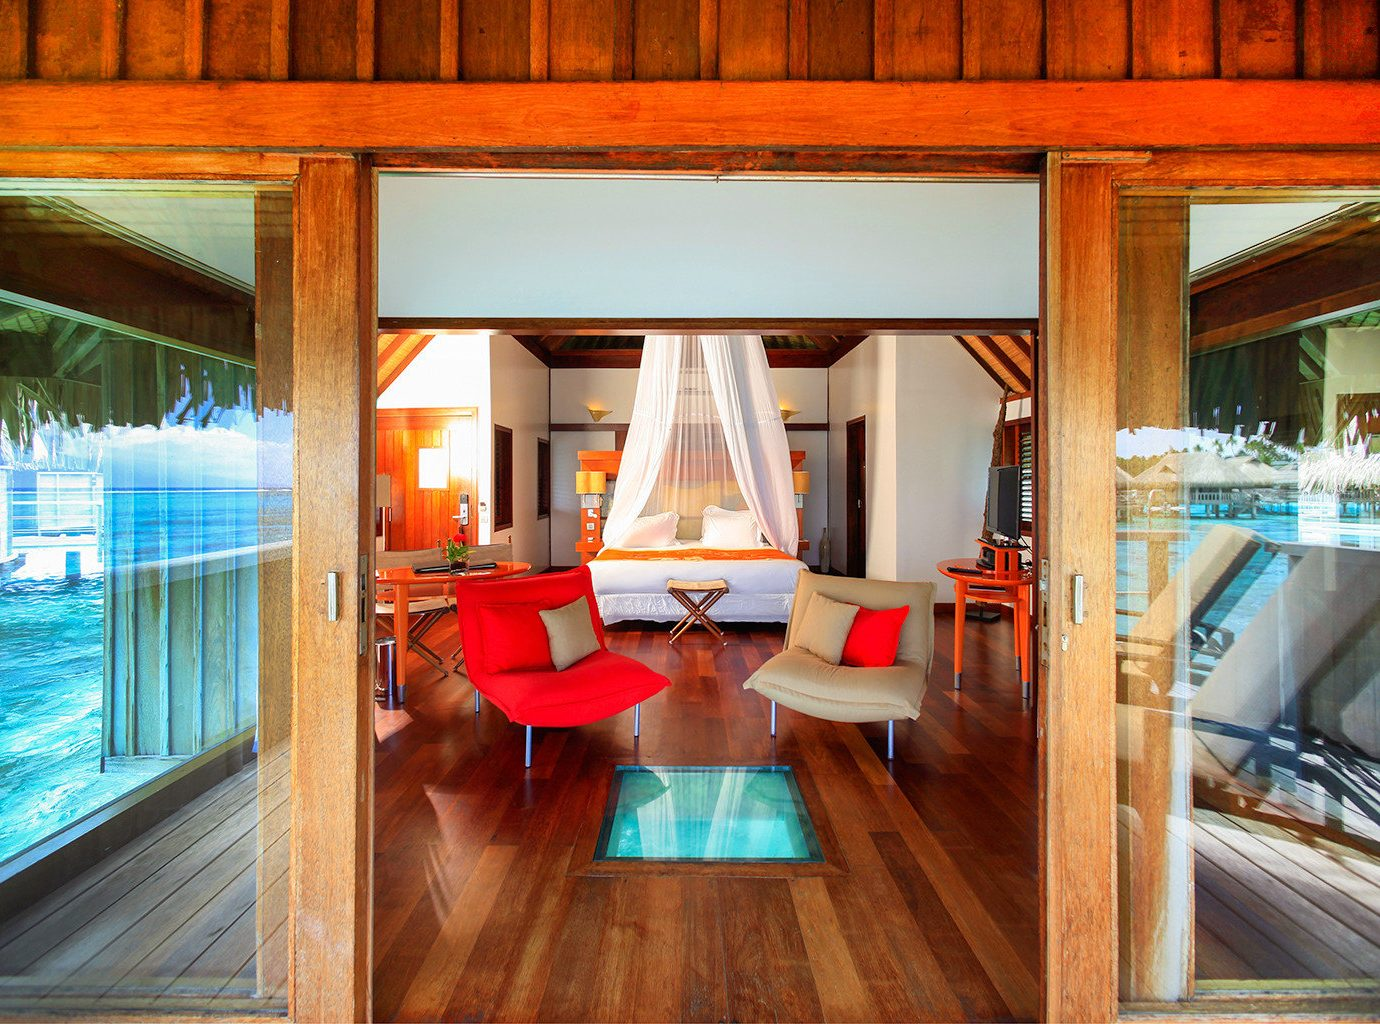 All-Inclusive Resorts Bedroom Boutique Hotels Hotels Living Luxury Overwater Bungalow Resort Romance Scenic views Trip Ideas indoor floor room property house wooden home living room estate interior design wood cottage real estate mansion Design window Villa furniture area